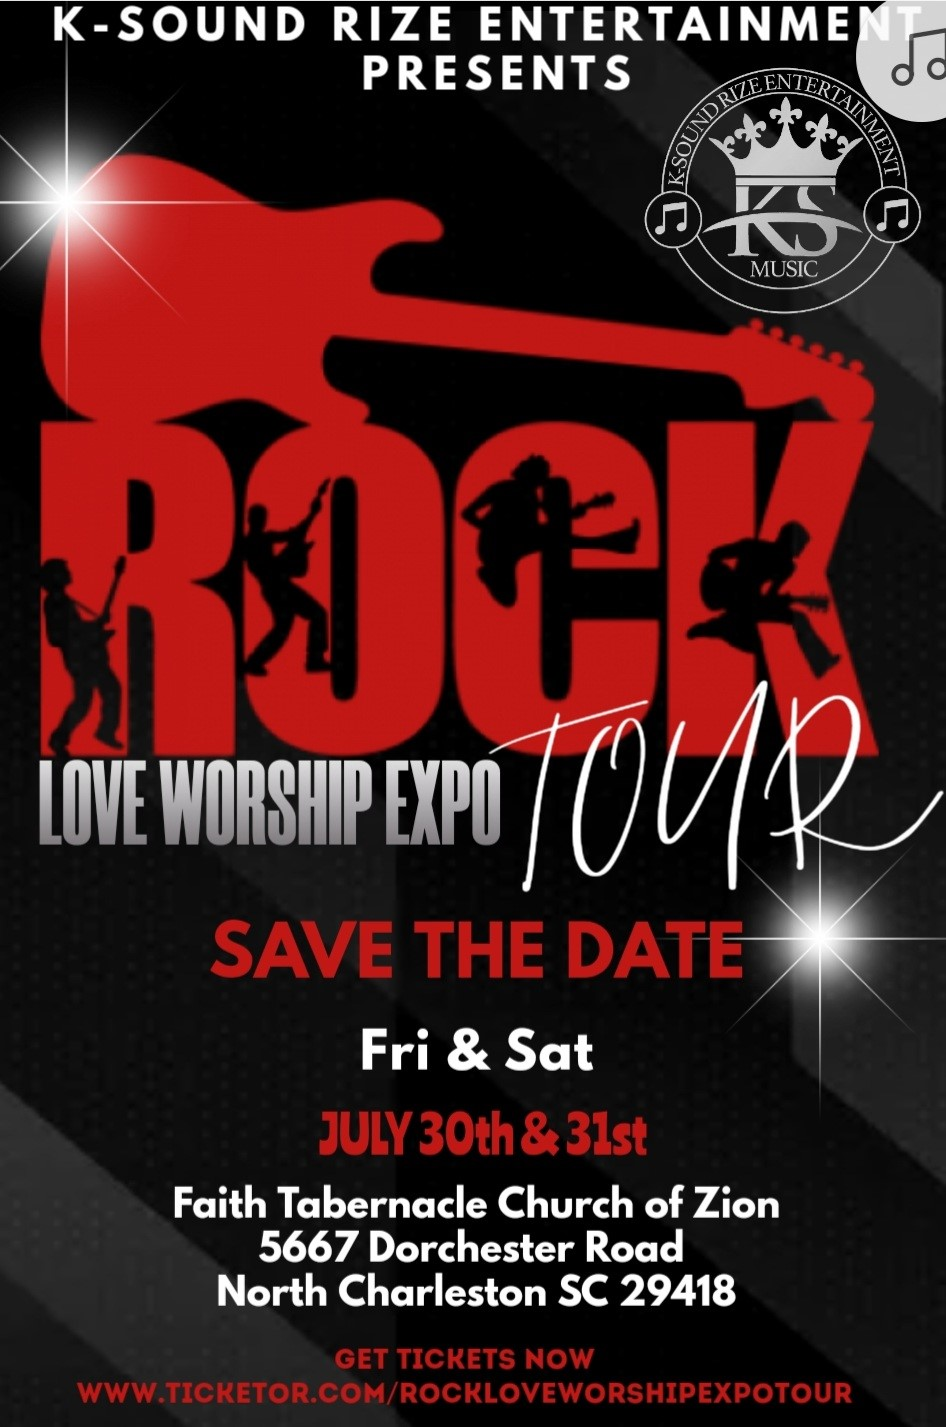 ROCK LOVE WORSHIP EXPO TOUR  on Jul 30, 19:00@Faith Tabernacle Church of Zion - Buy tickets and Get information on RockLoveWorshipExpoTour